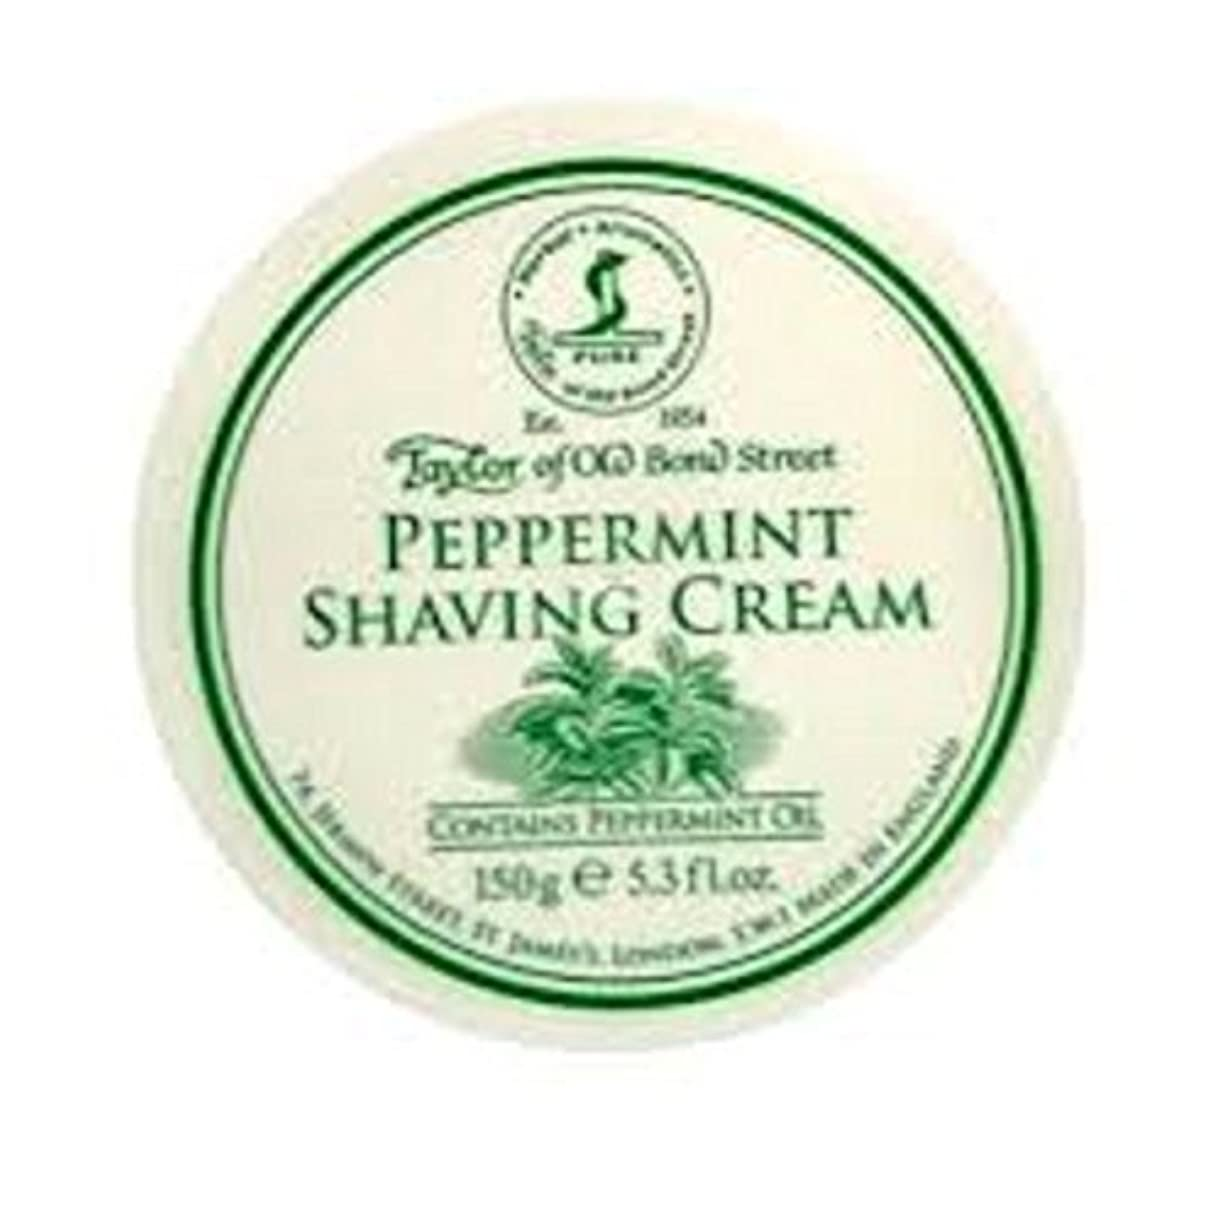 Taylors of Old Bond Street 150g Traditional Shaving Cream Tub (Peppermint) by Taylor of Old Bond Street